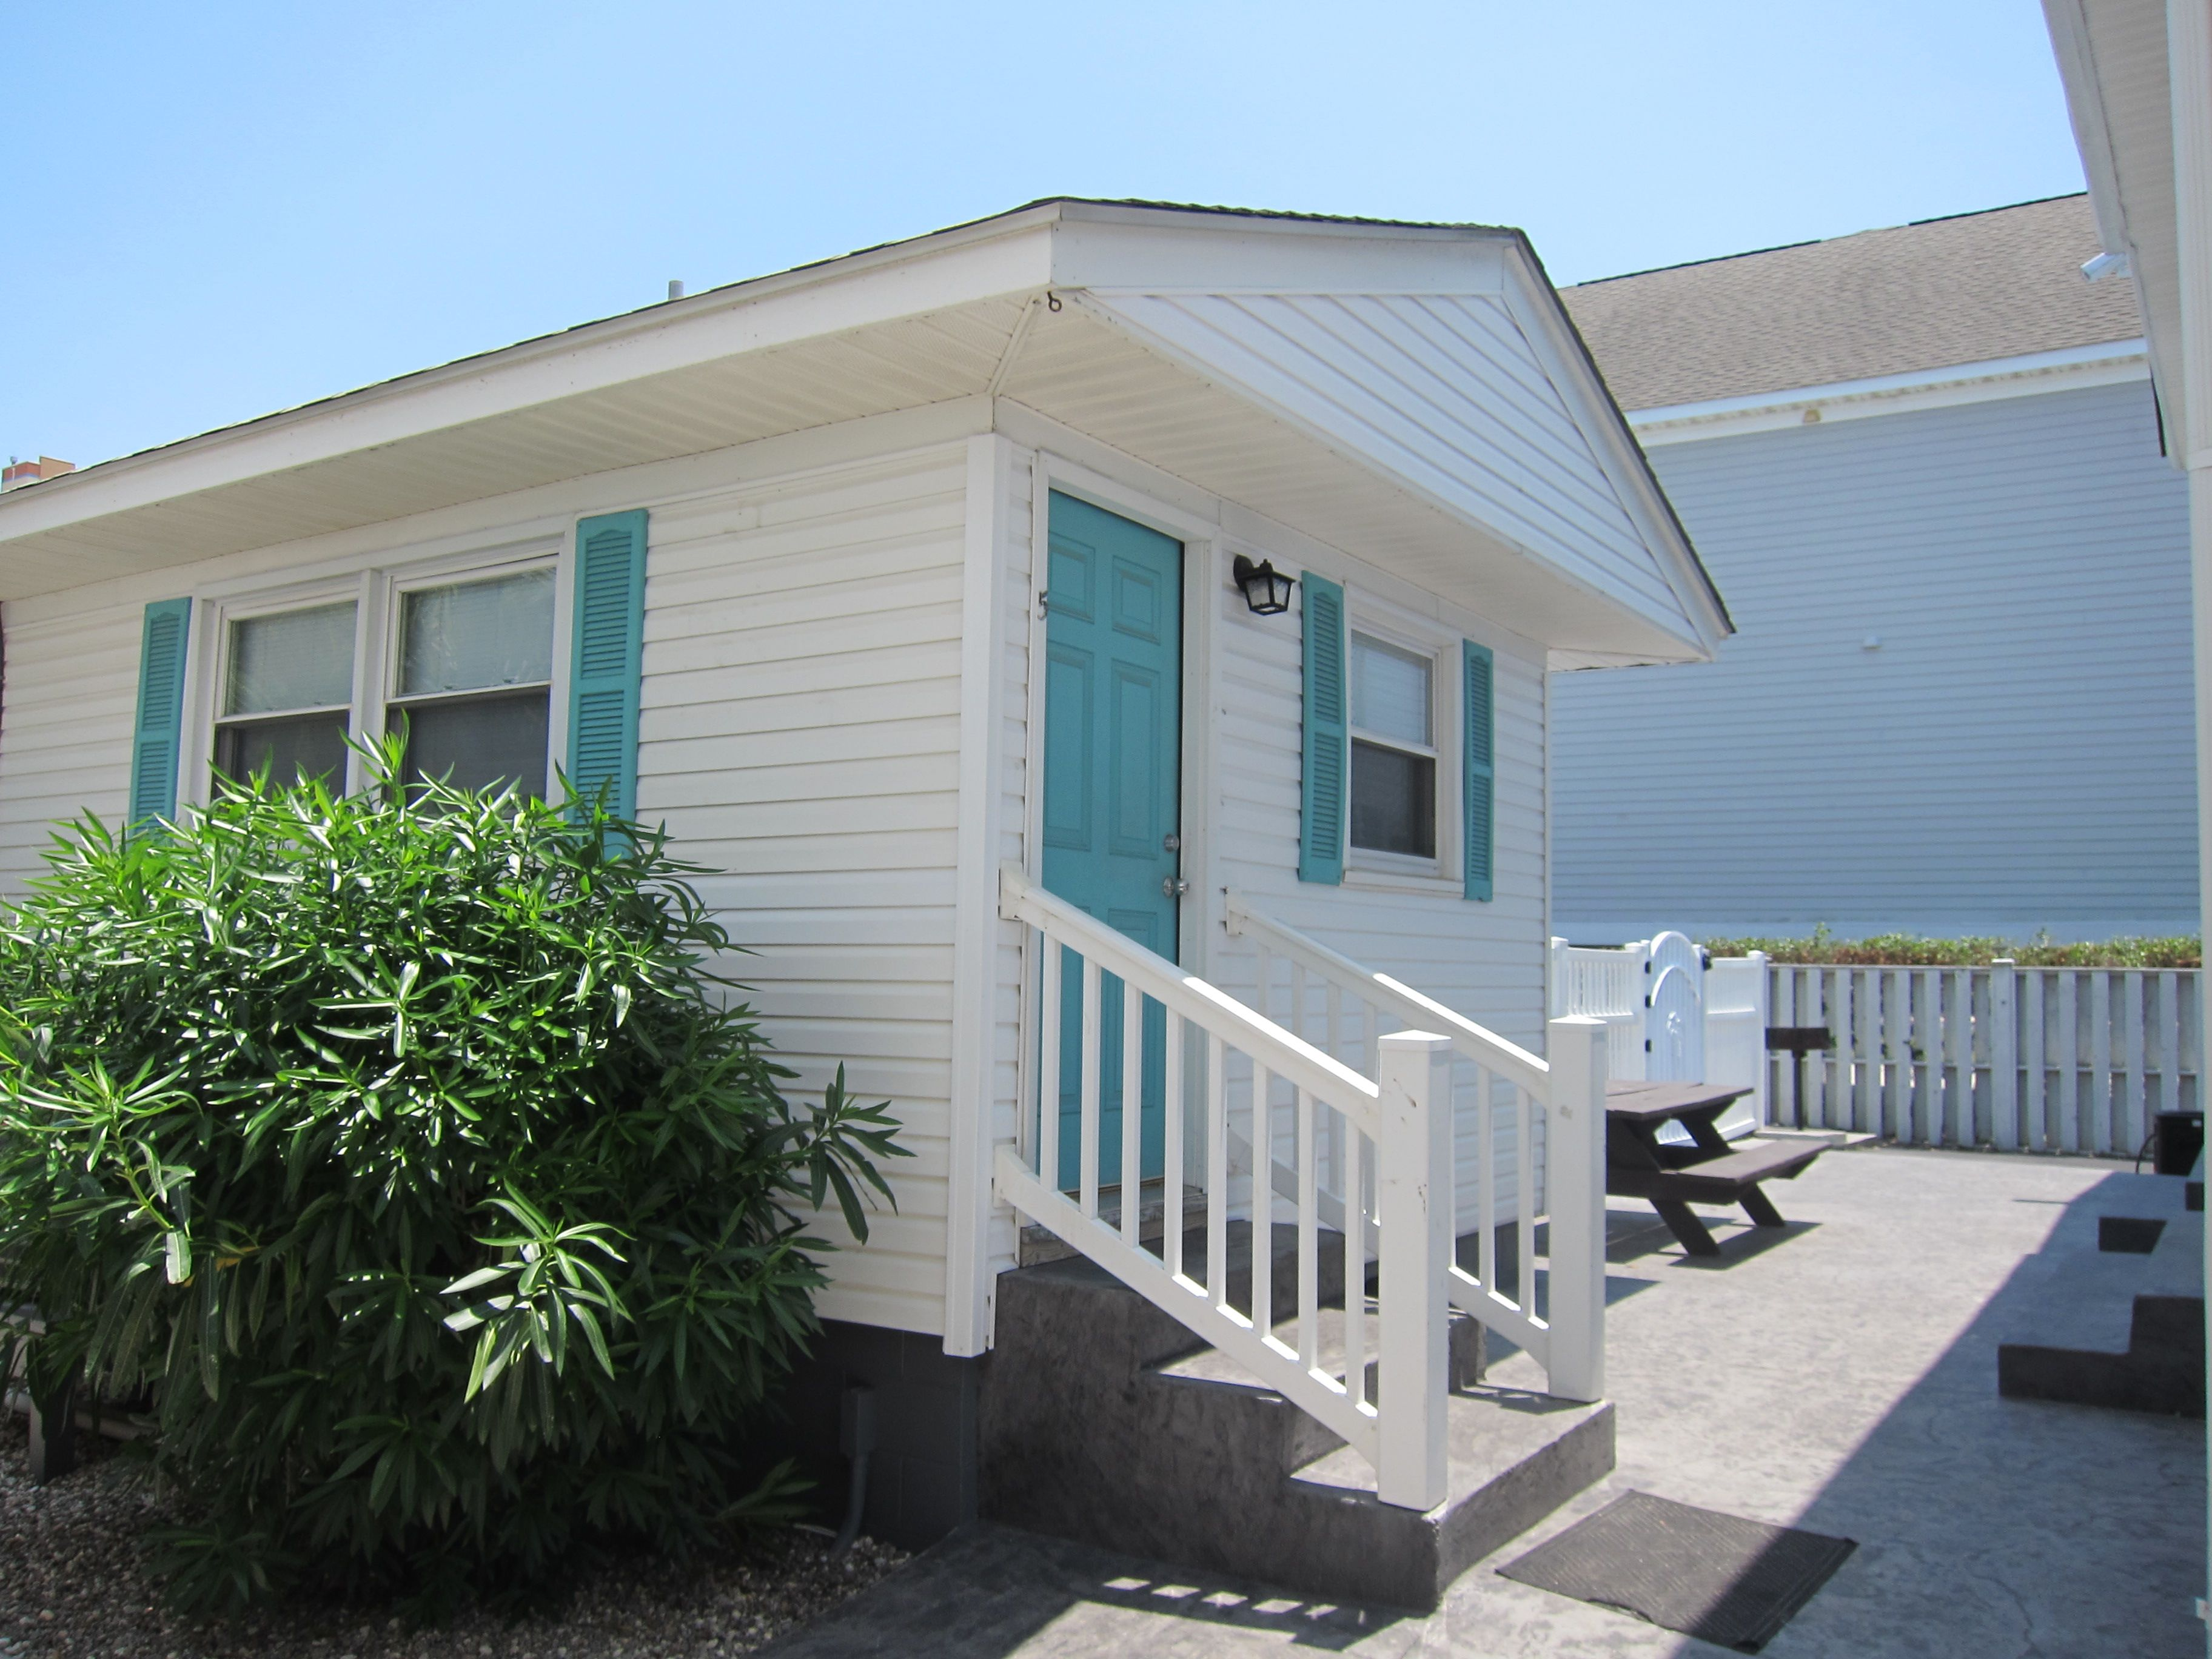 final for sc sale beach cottages homes local myrtle cottage coupled updated community rendering gigabit live